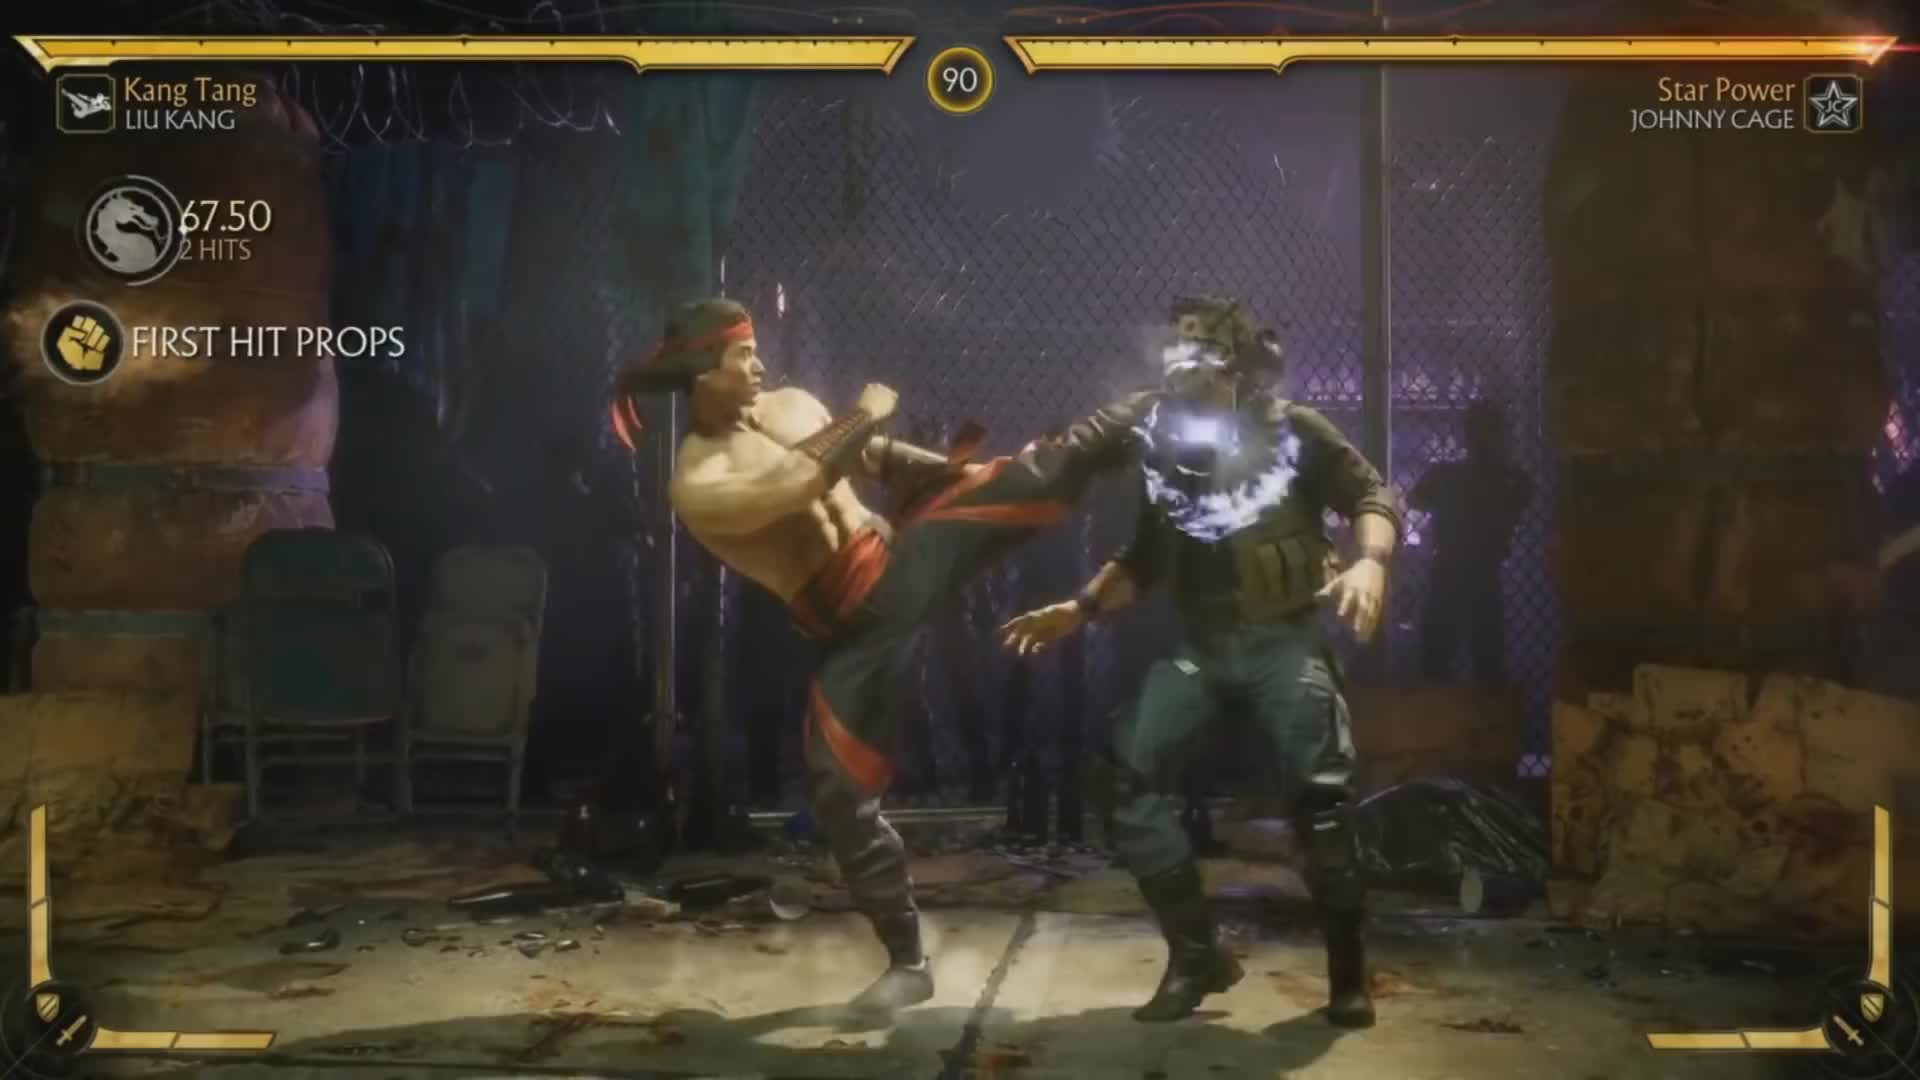 Liu Kang Mk11 Gifs Search Search Share On Homdor